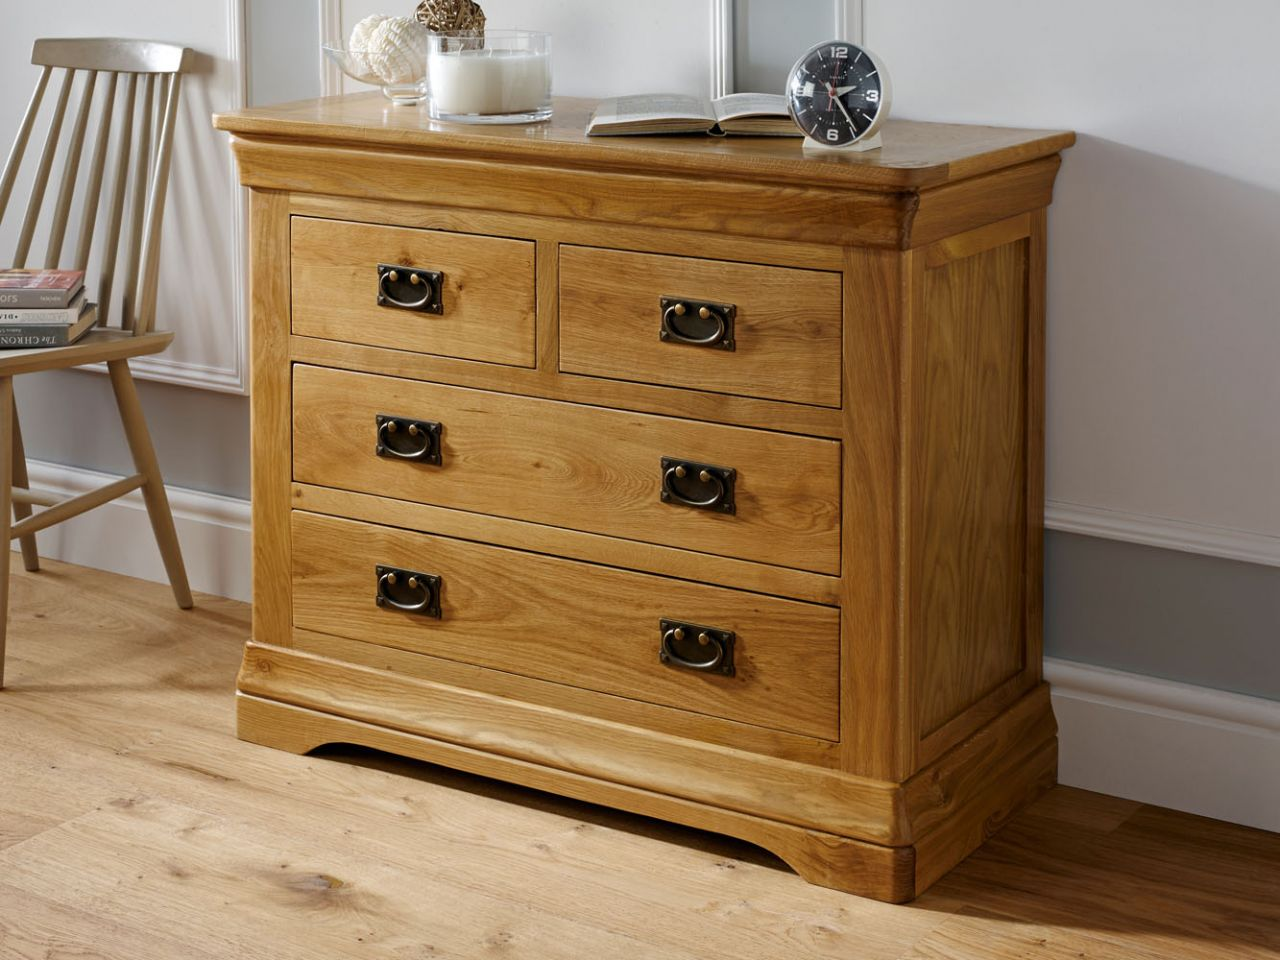 farmhouse country oak 2 over 2 chest of drawers free on country farmhouse furniture id=81887